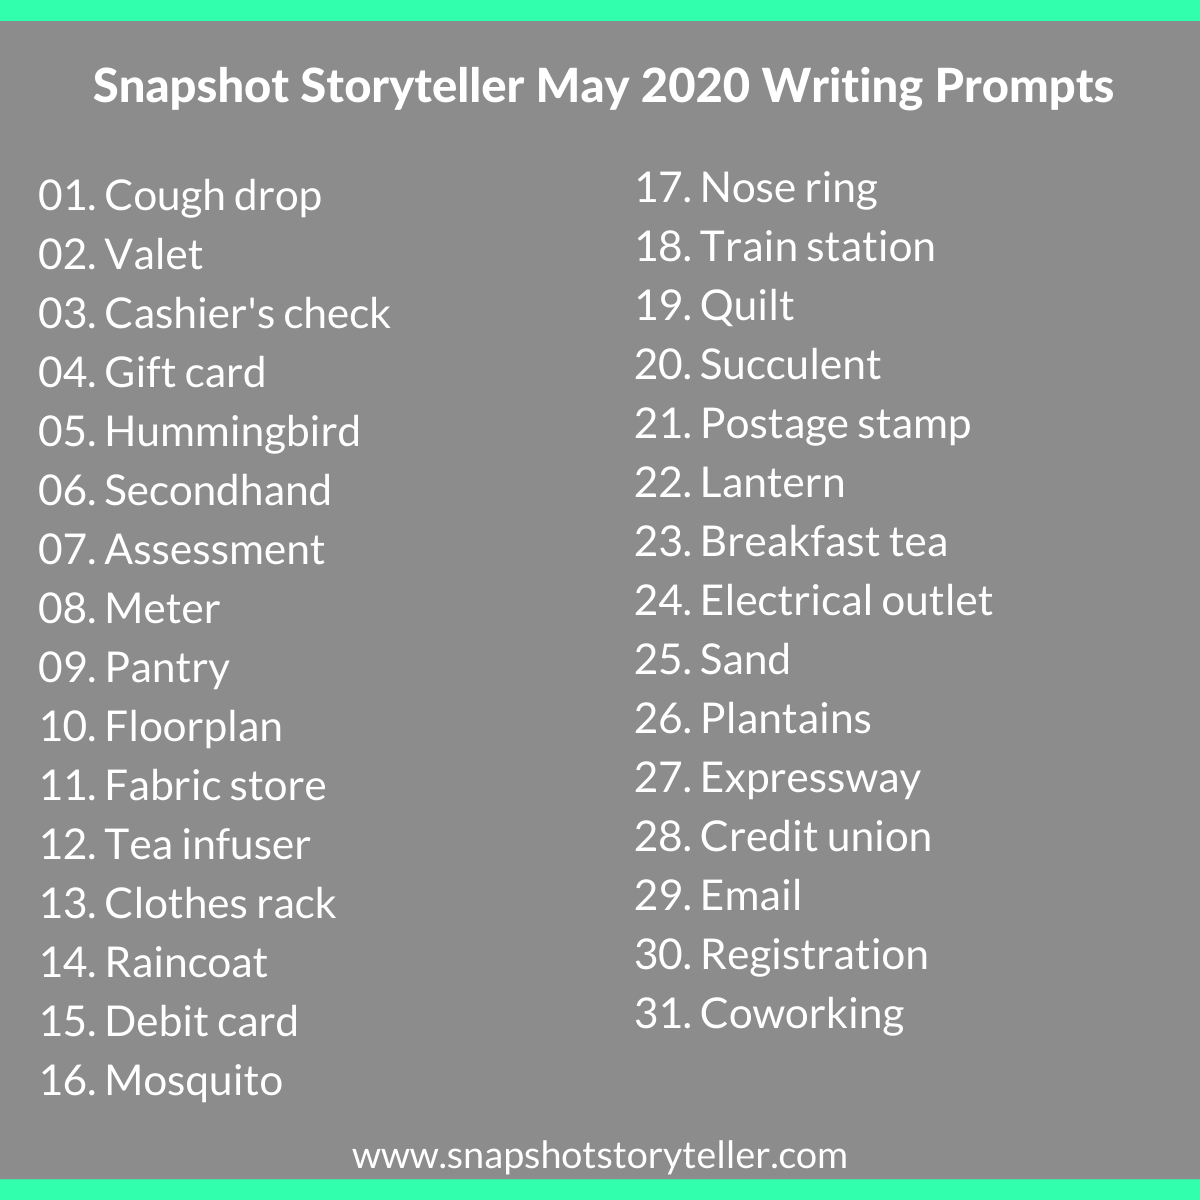 Snapshot Storyteller | May 2020 Writing Prompts | www.snapshotstoryteller.com | #amwriting #SnapshotStoryteller #creativestoryteller #creative #storyteller #creativewriter #IWrite  #WriteOn #writersofinstagram #writingprompt #writingprompts